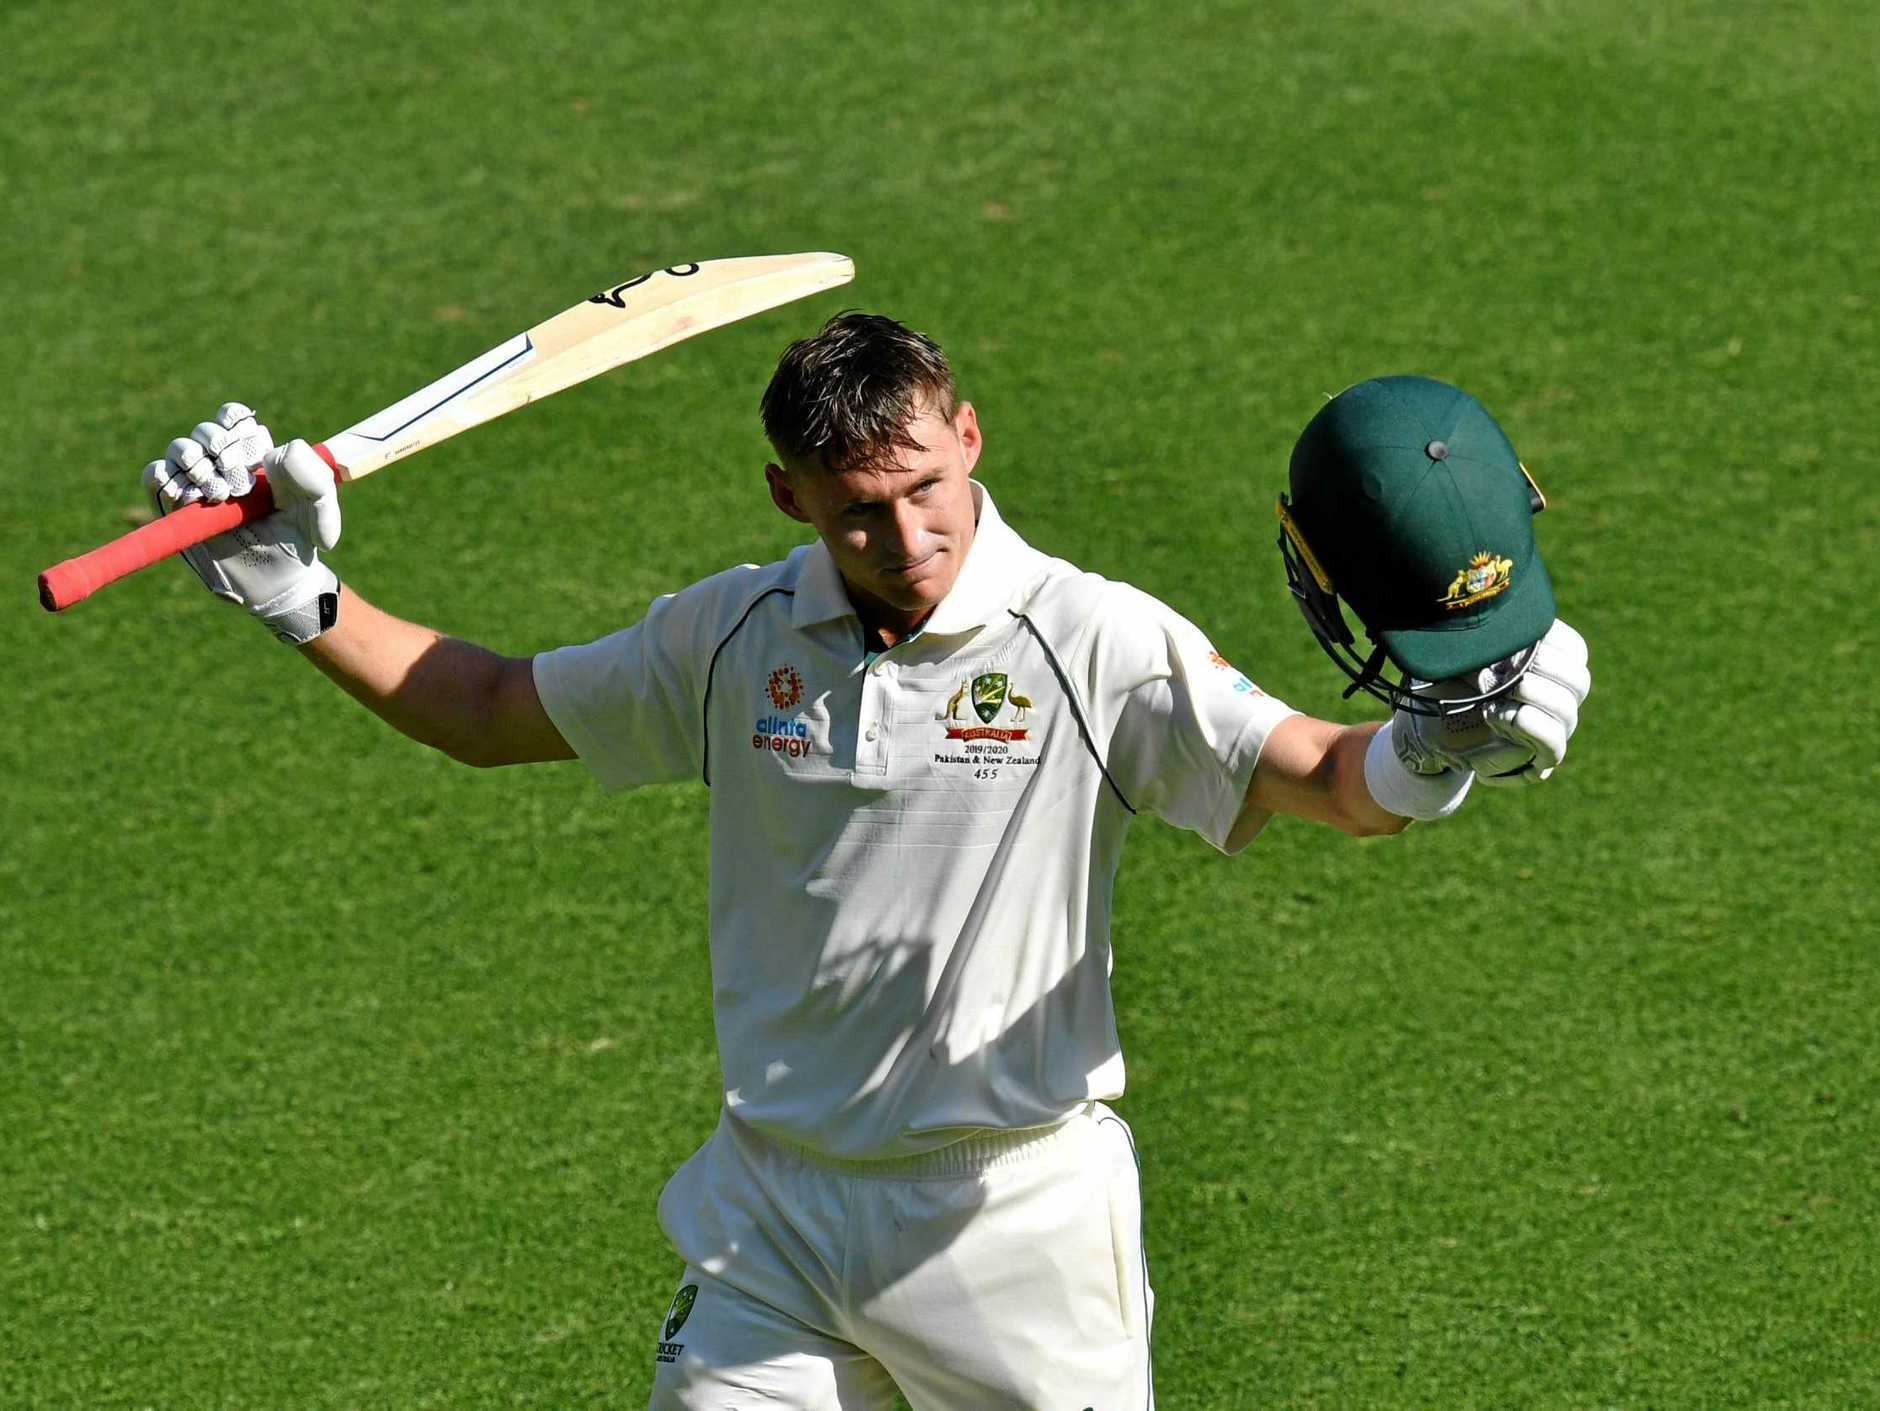 Marnus Labuschagne acknowledges the crowd as he leaves the field after scoring 185 at the Gabba. Picture: Darren England/AAP